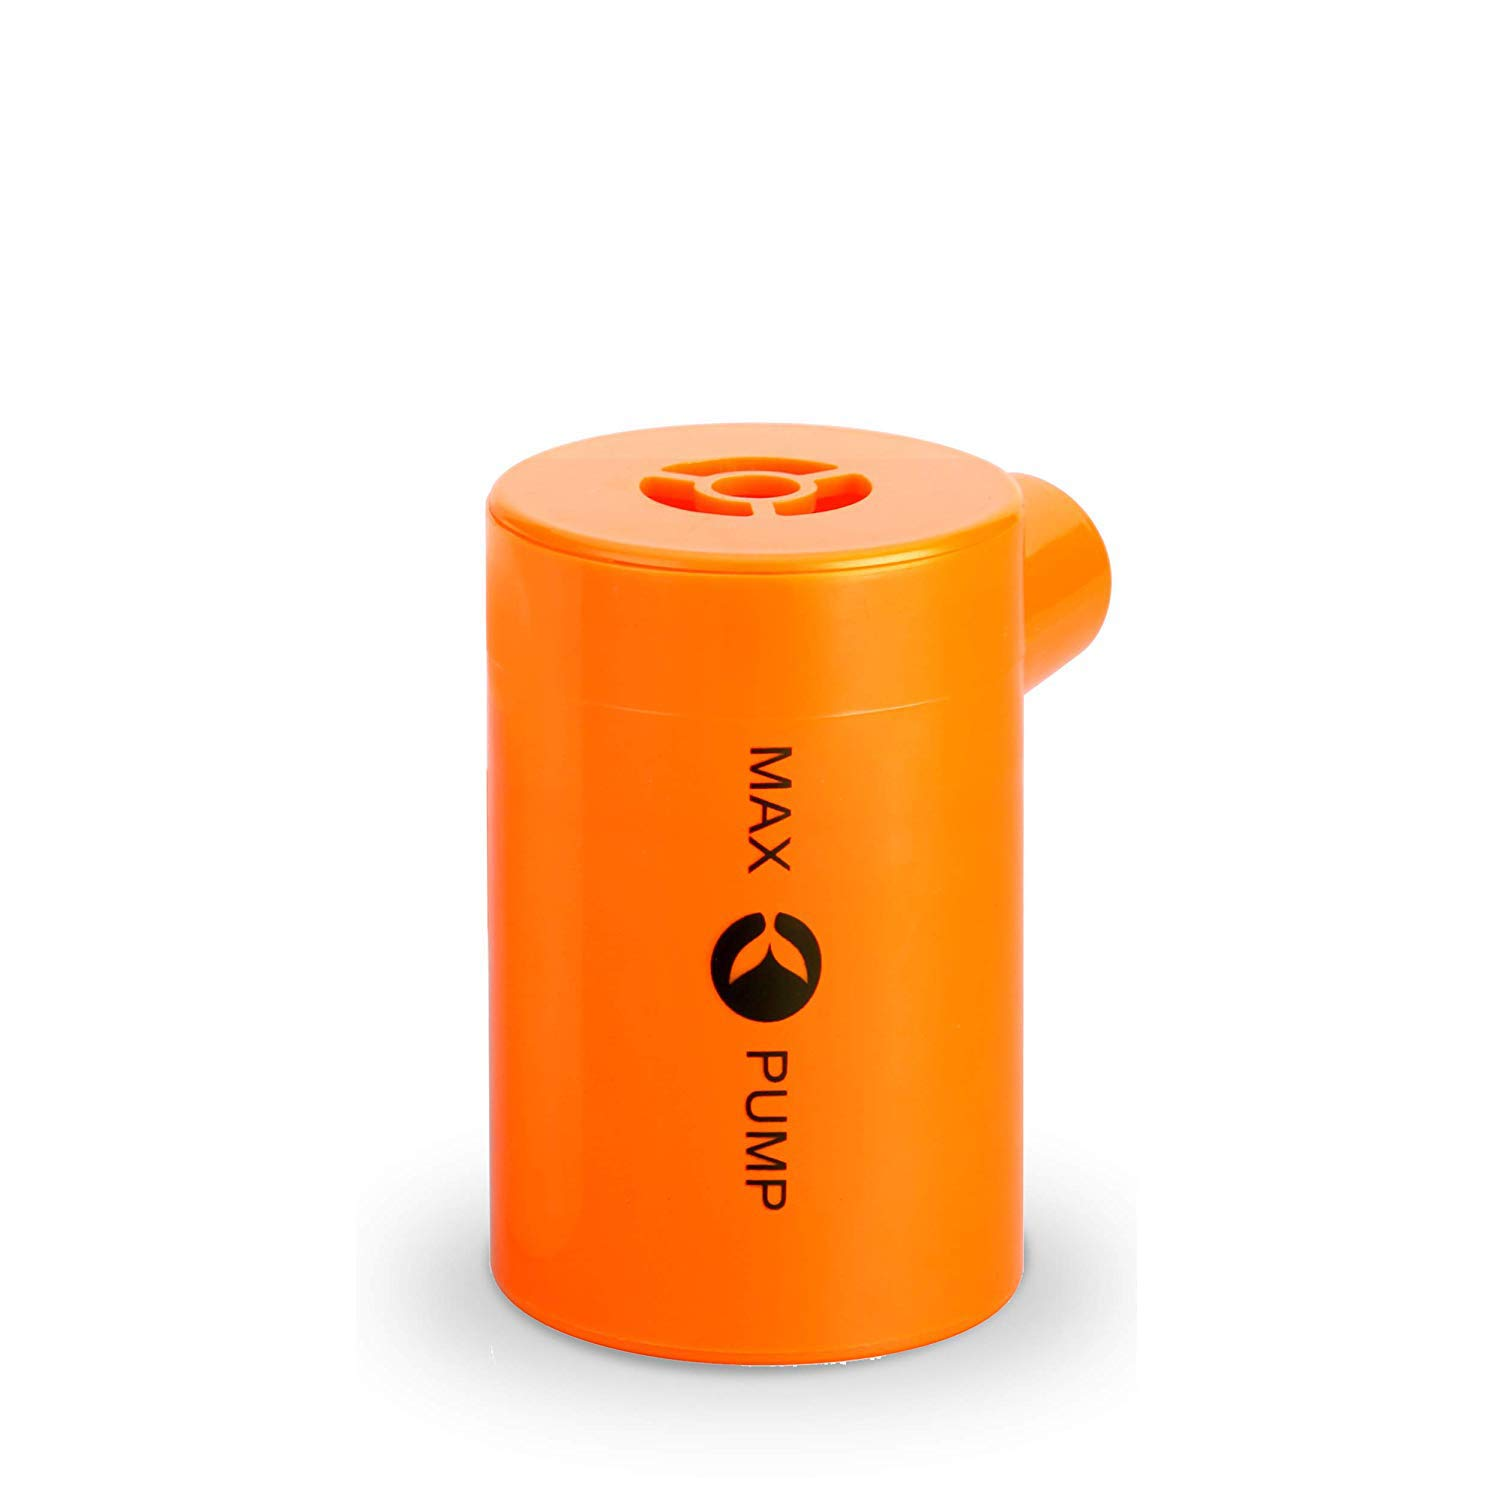 f8a3a3a15ac9a Details about FLEXTAILGEAR Portable Air Pump with 3600mAH Battery USB  Rechargeable lightweight